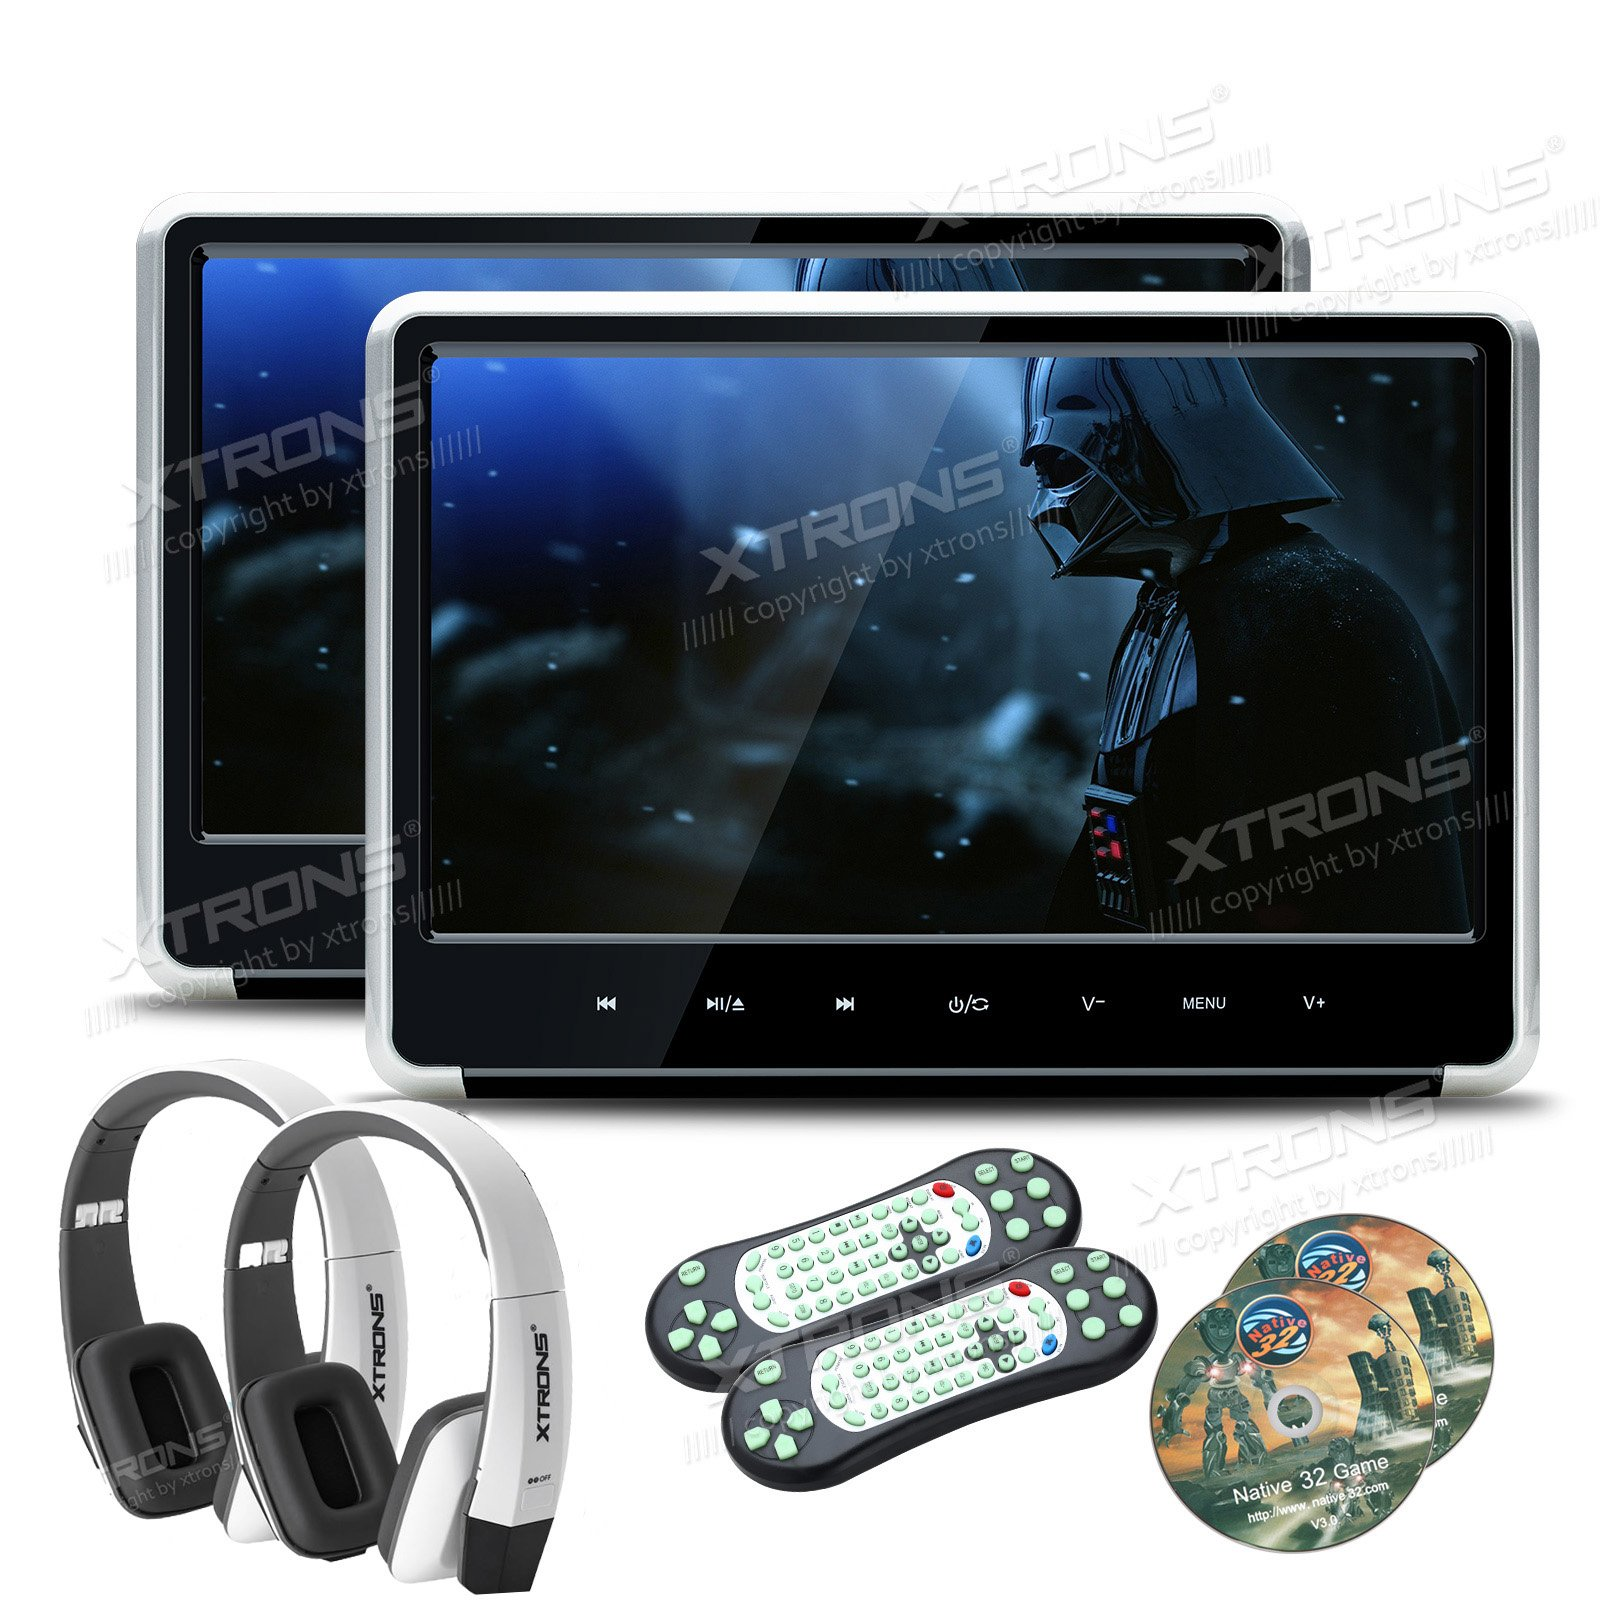 XTRONS Silver 2x 11.6 Inch Pair HD Digital Touch Panel Car Auto Headrest Active DVD Player Kid Games Built-in HDMI Port New Version White Headphones Included by XTRONS